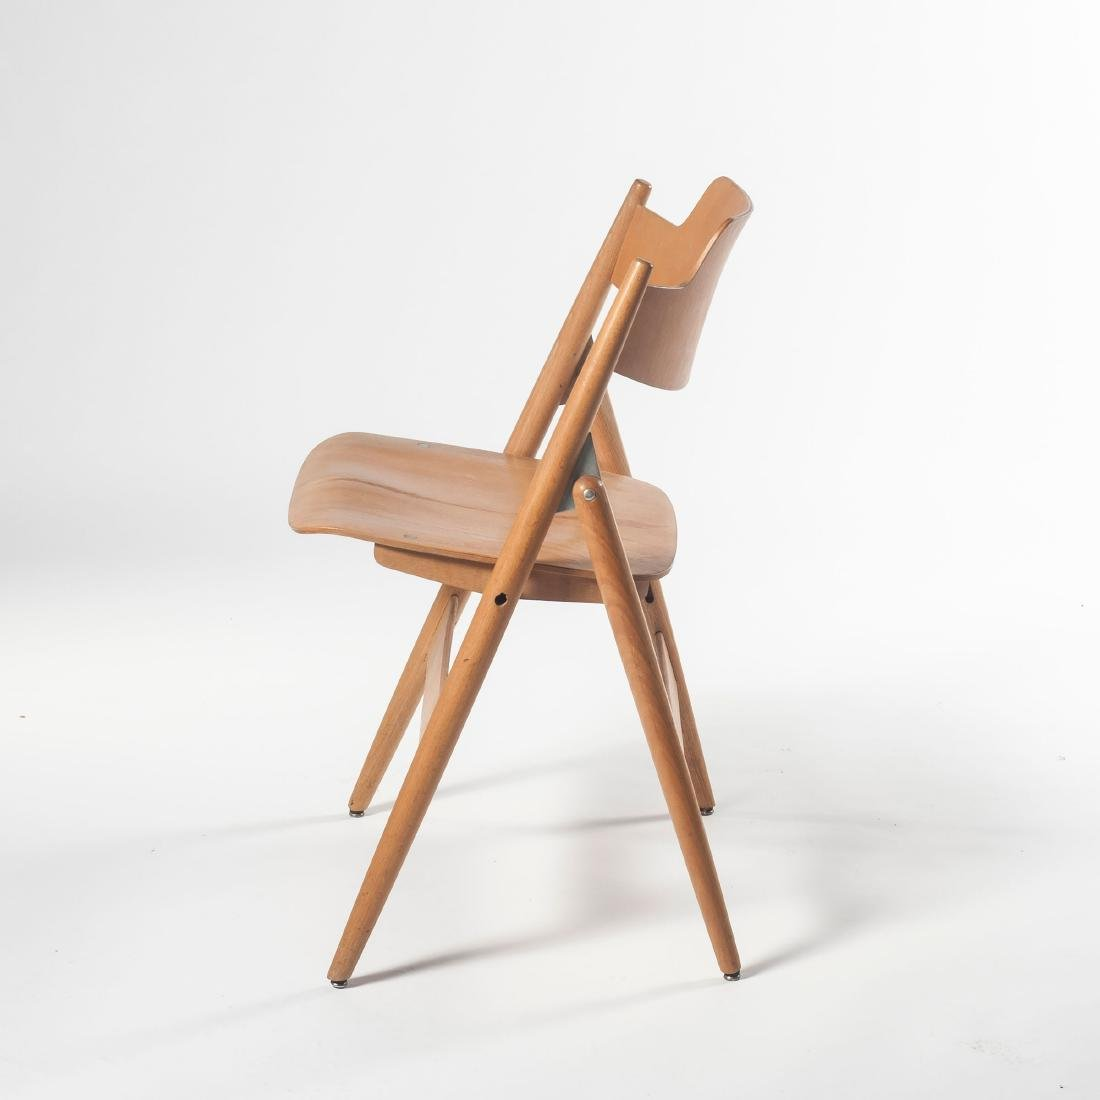 Six 'SE 18' folding chairs, 1953 - 2